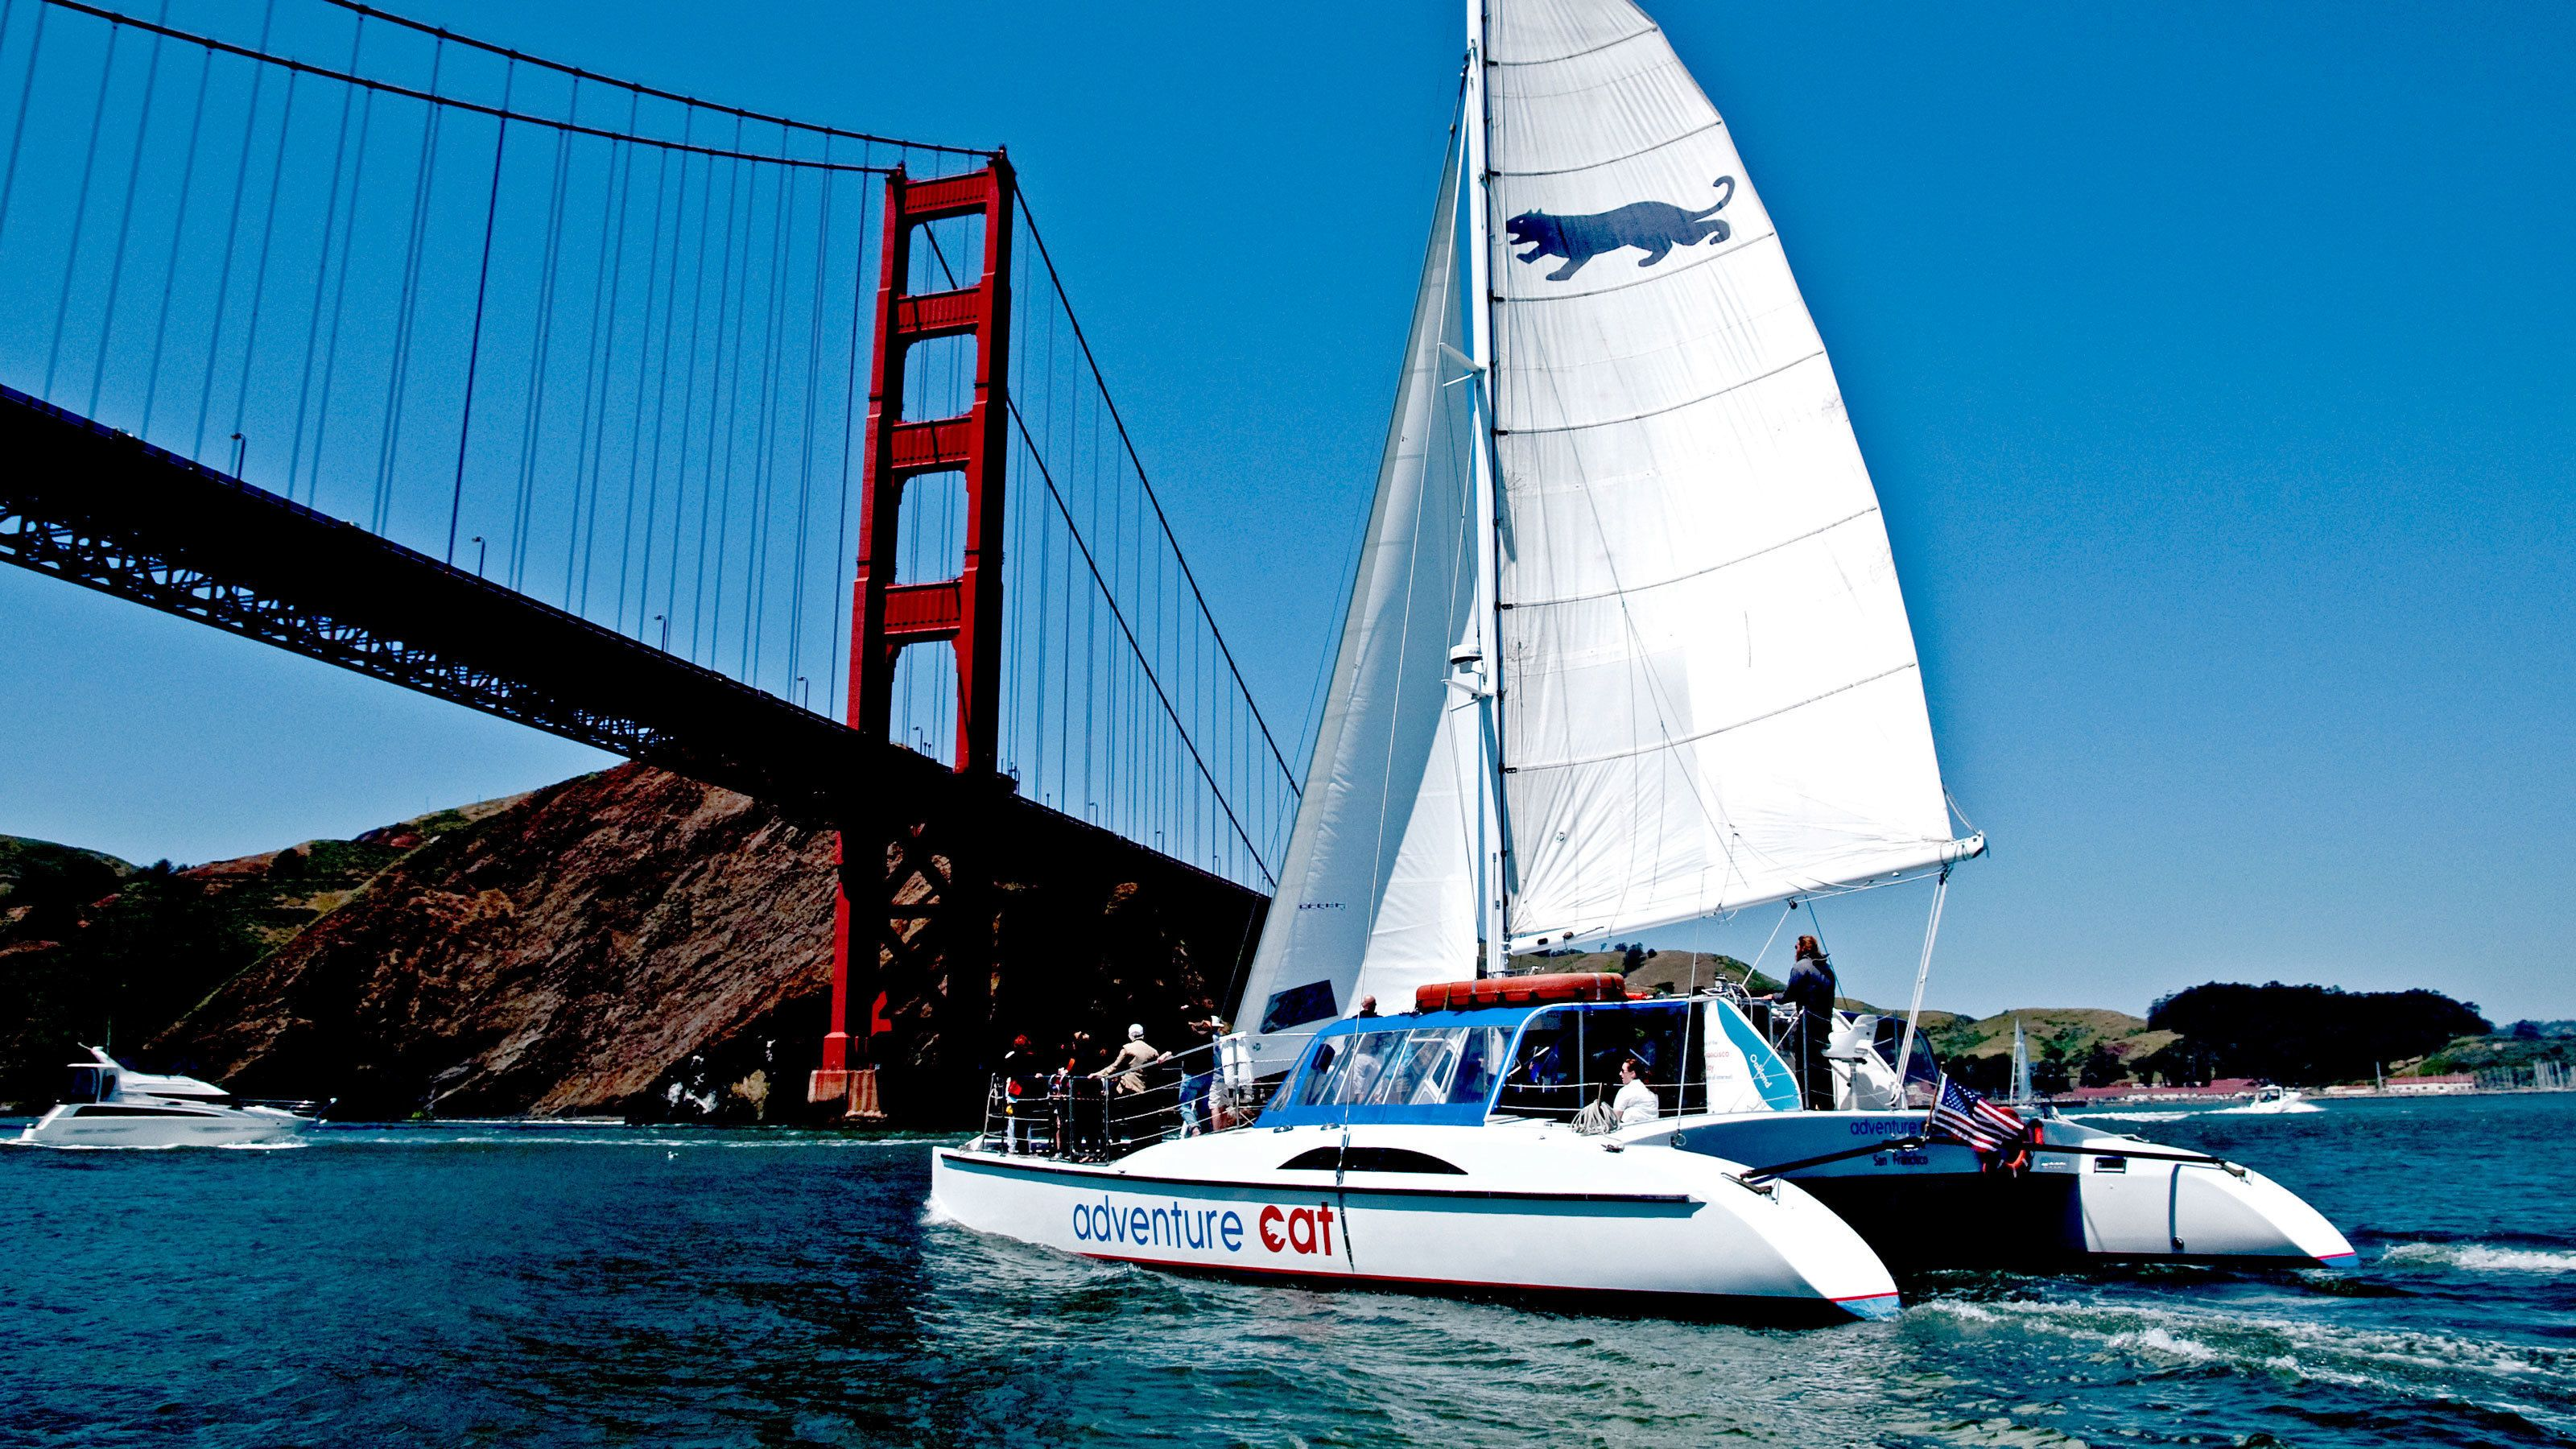 Catamaran Sailing Cruise on the Bay